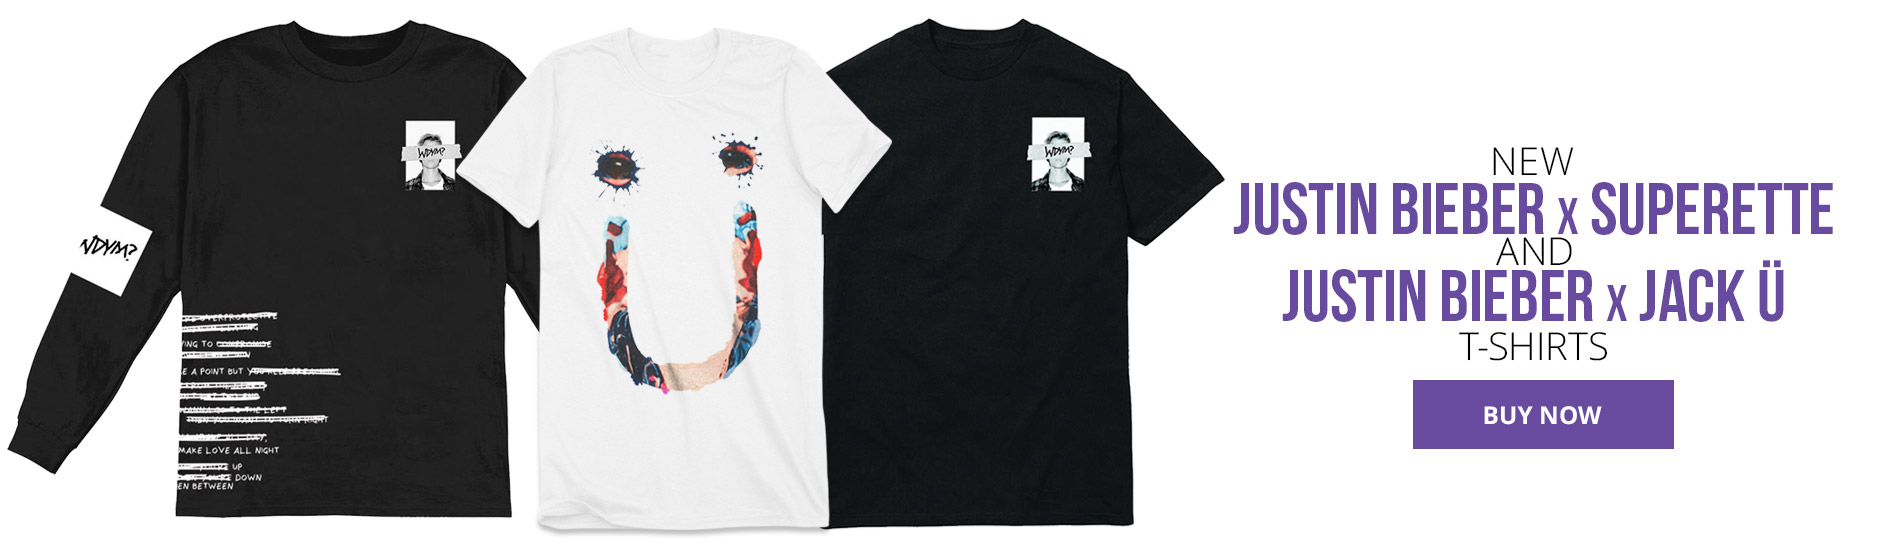 New Collaboration T-Shirts